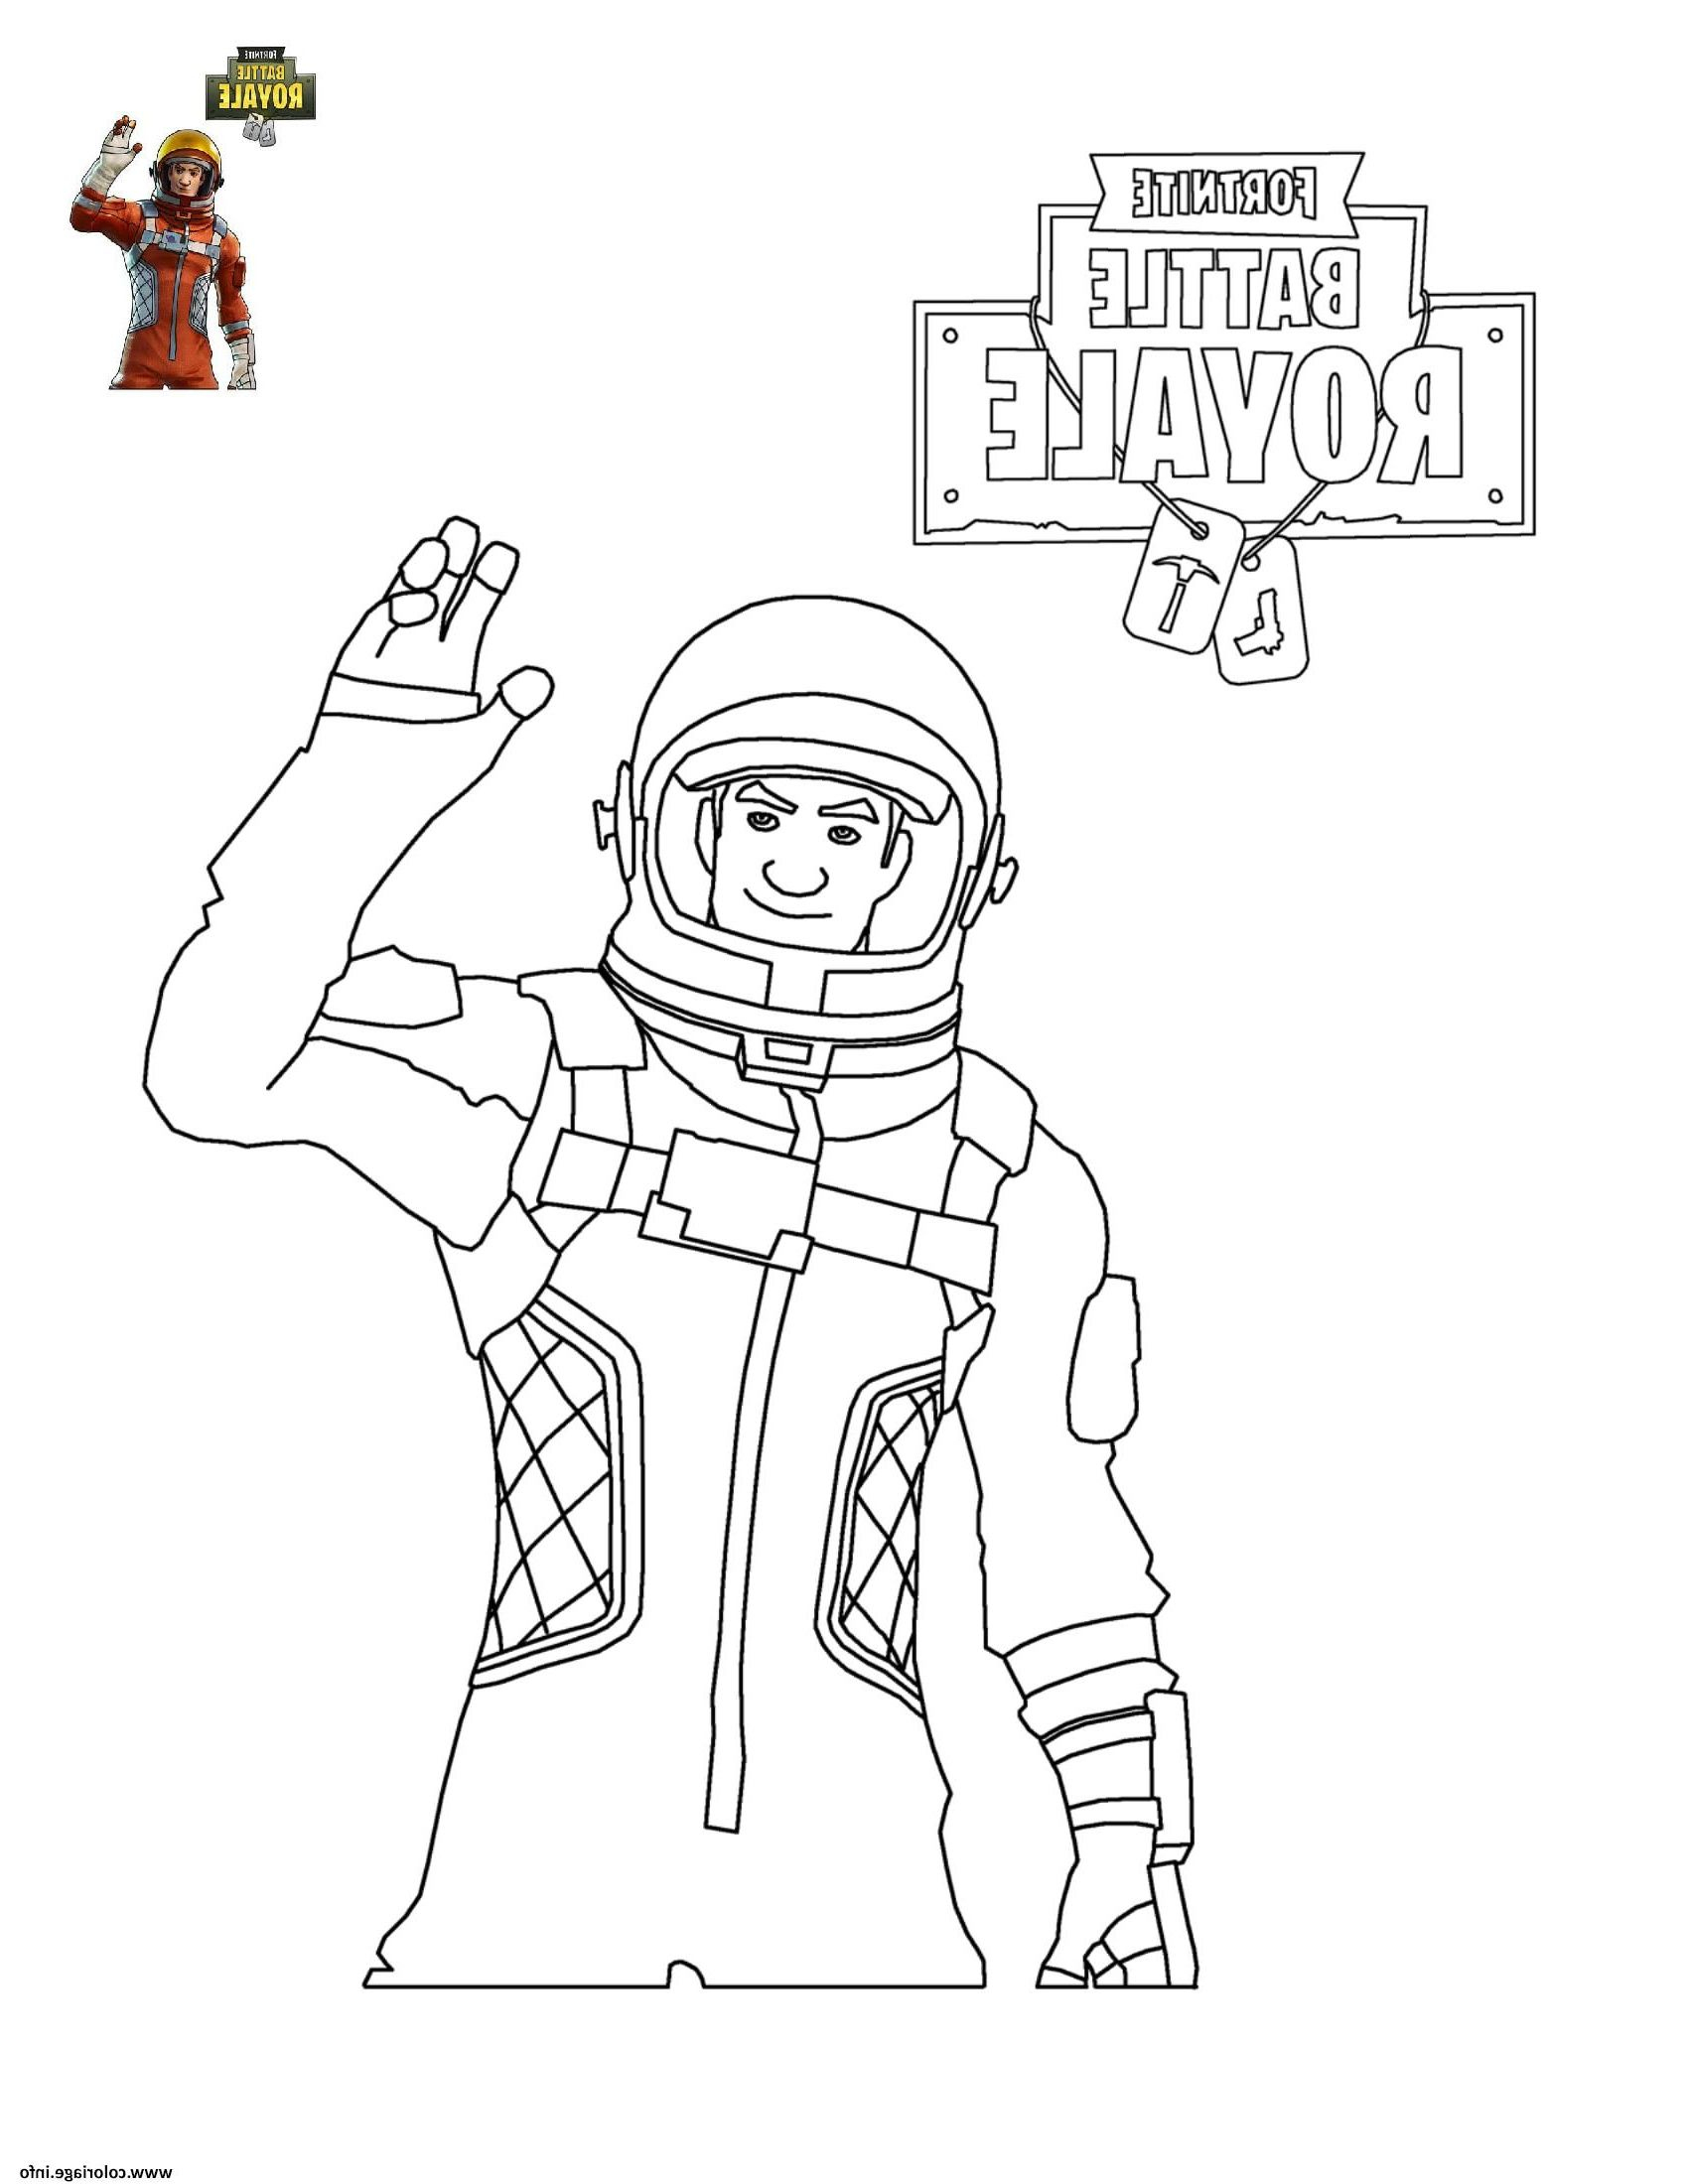 Coloriage Skin Fortnite . 11 Loisirs Coloriage Skin concernant Coloriage Fortnite